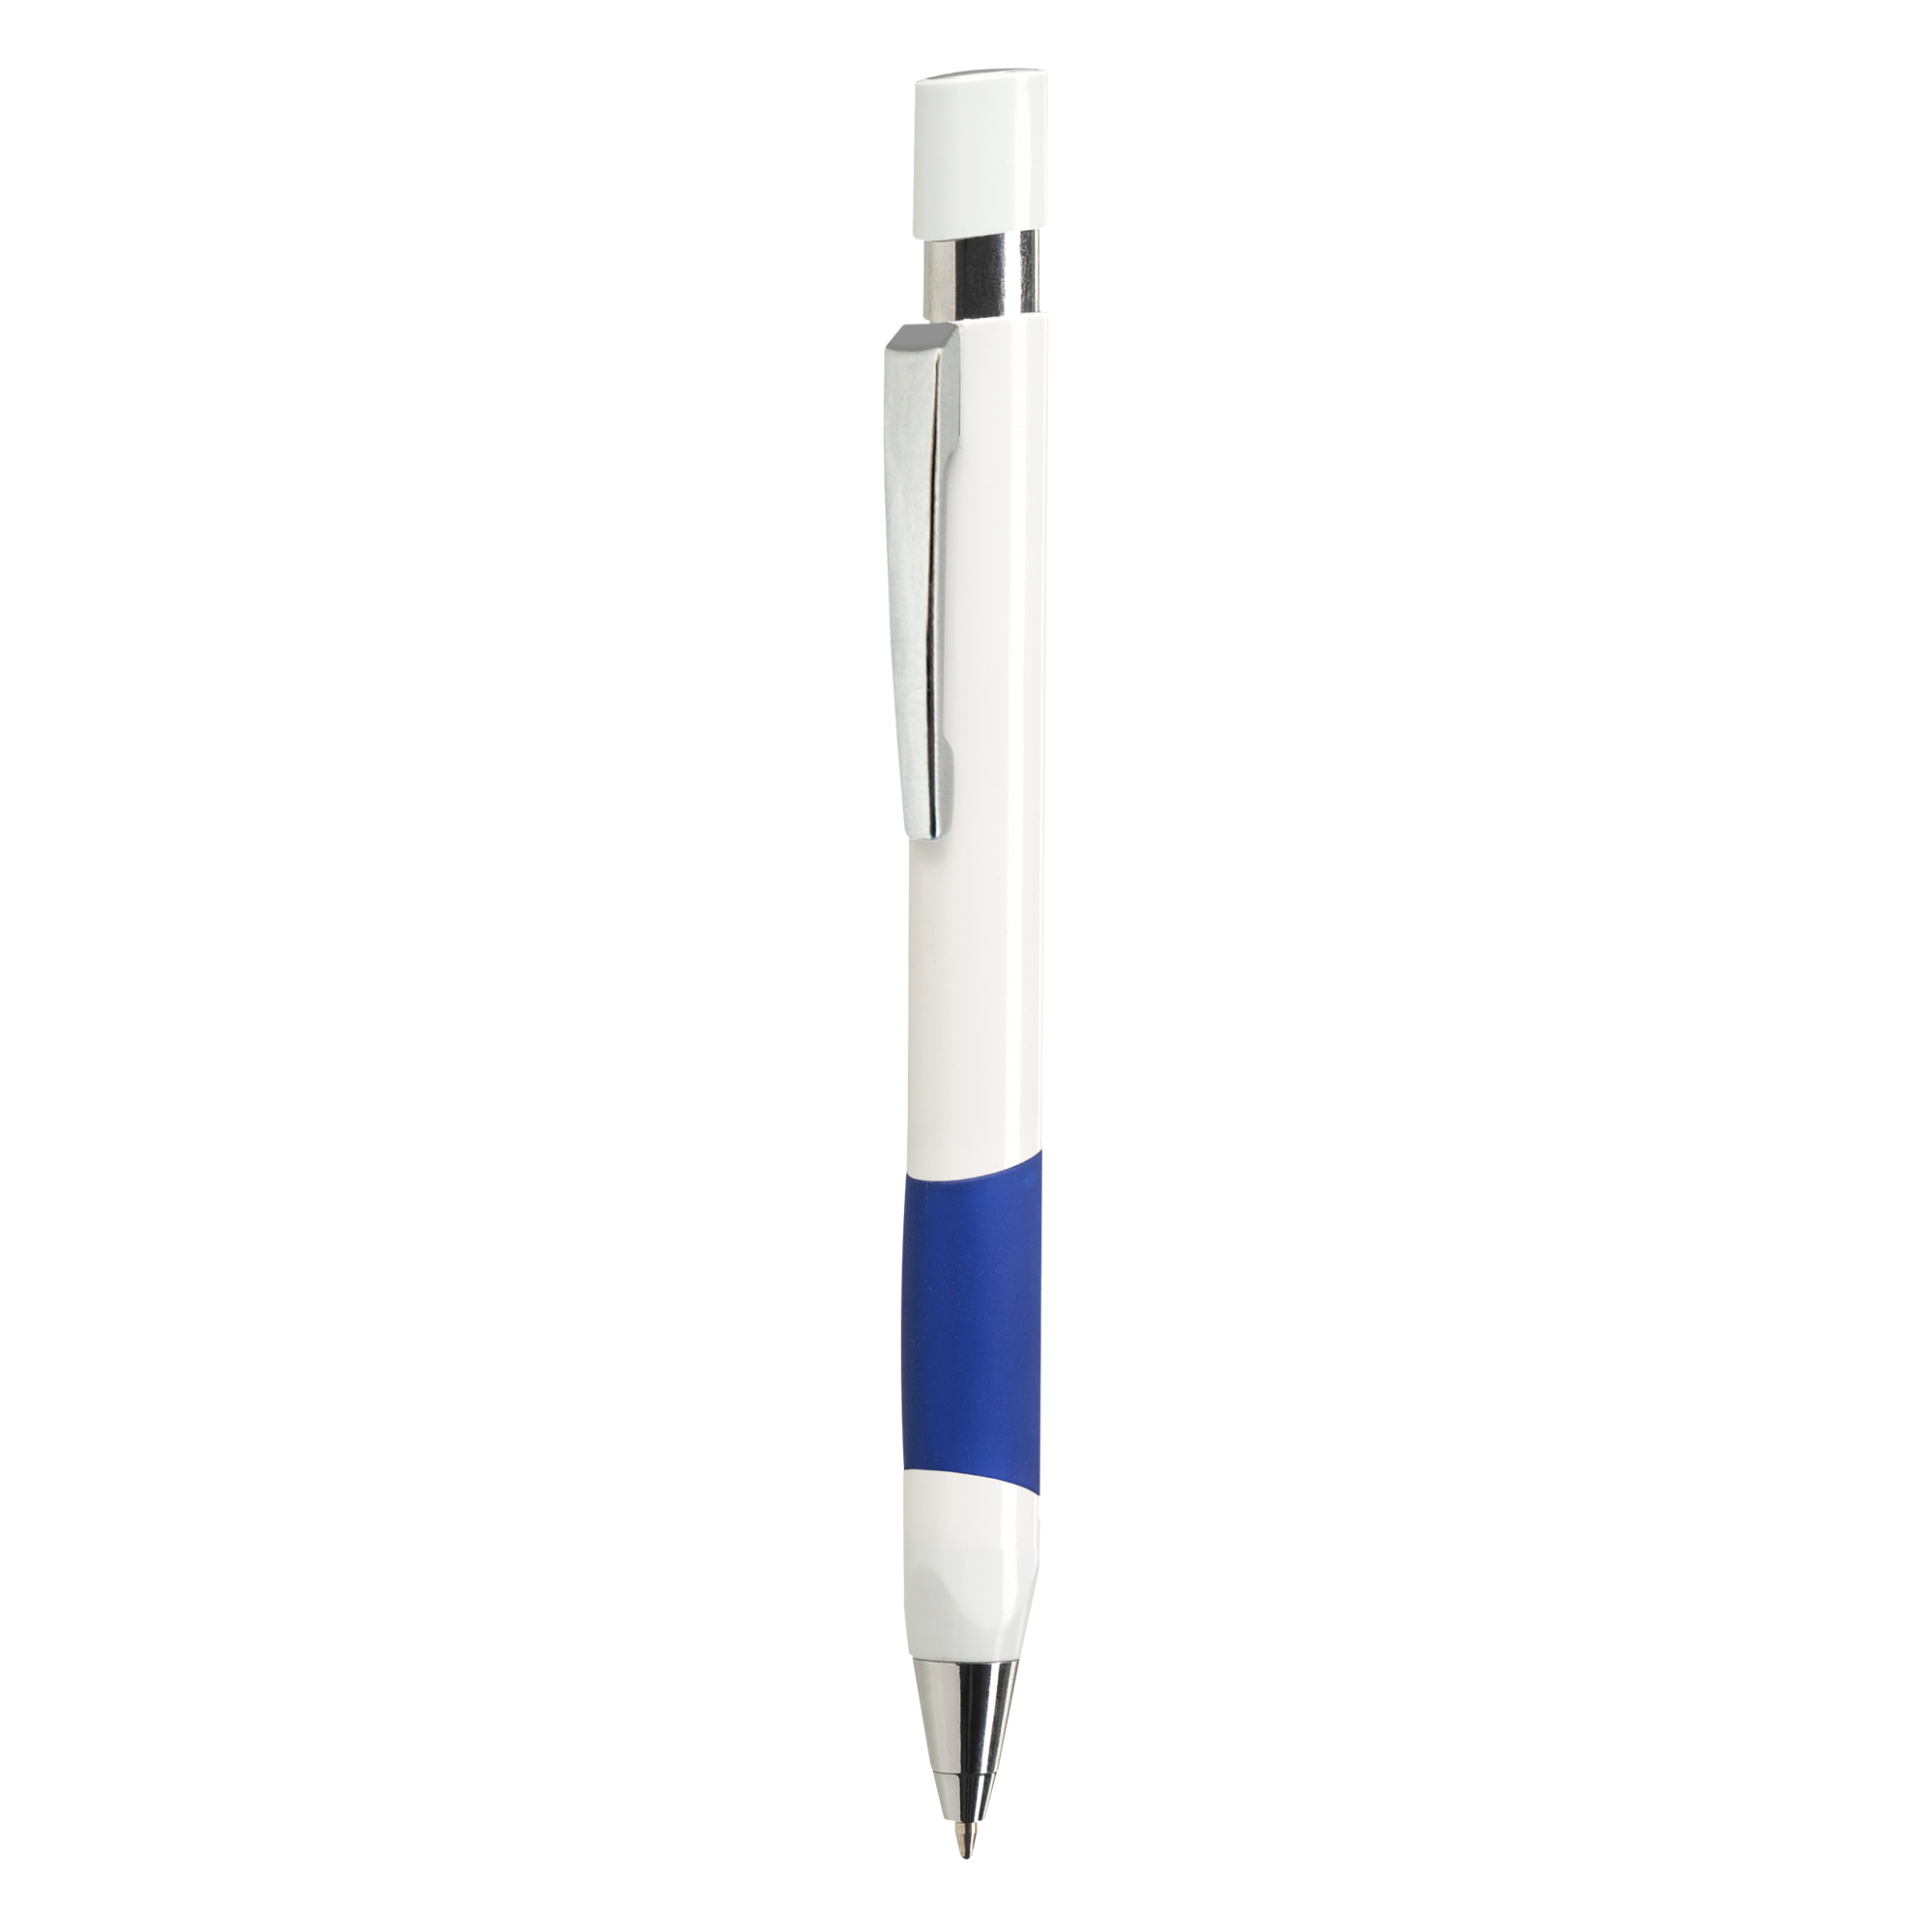 A blue coloured basic pen available to be printed with a custom logo or image on the side at Drukzo